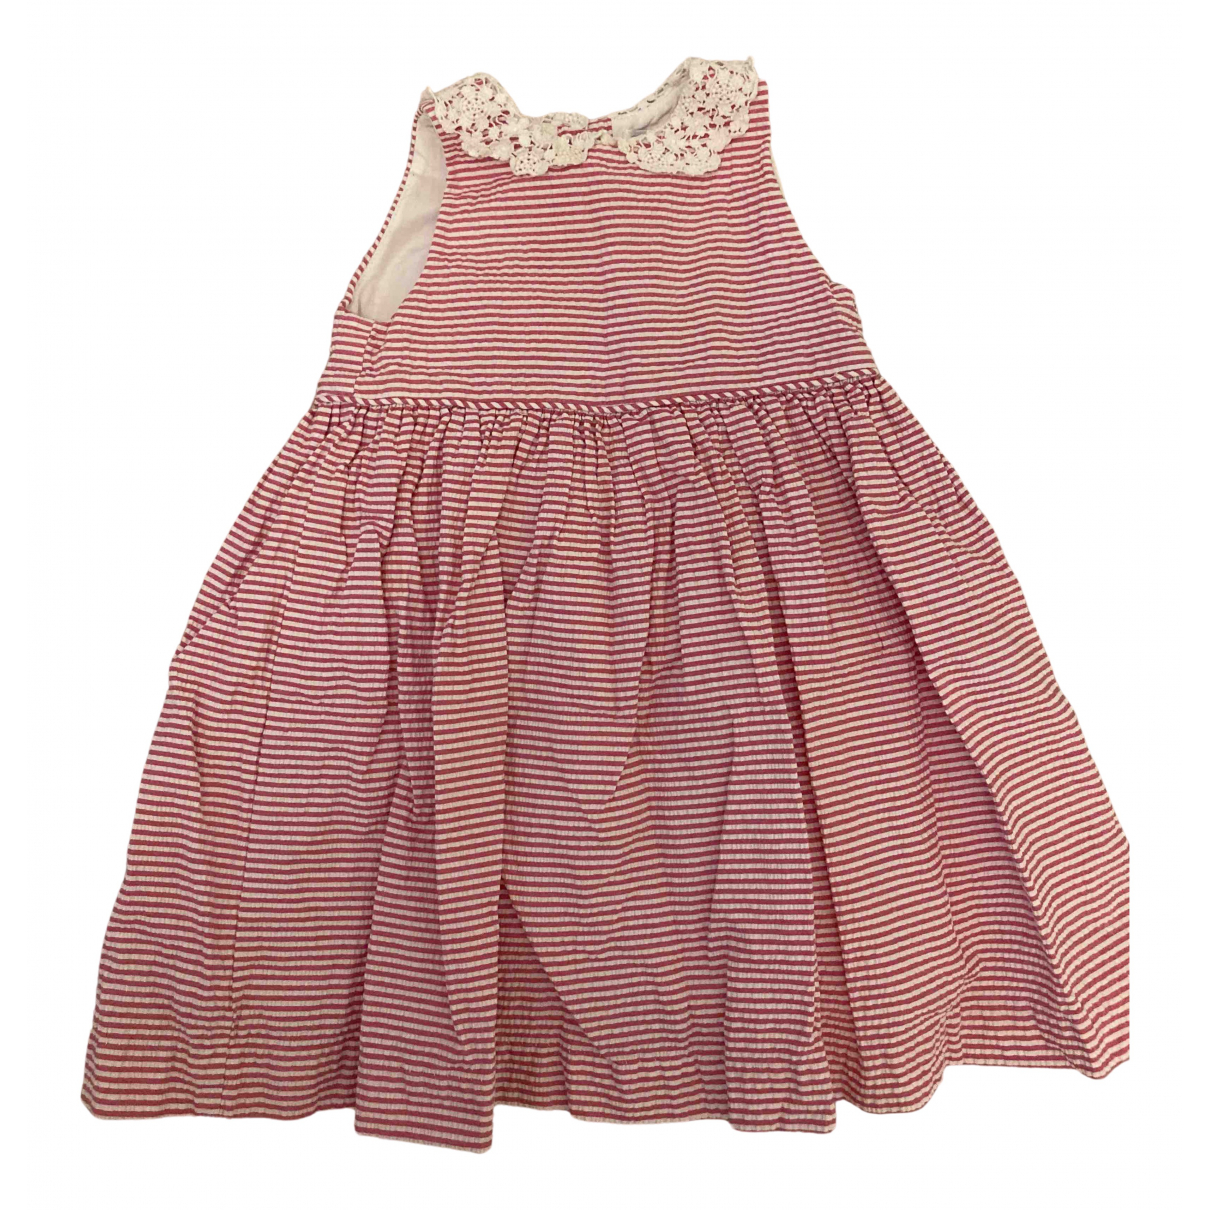 Ralph Lauren N Pink Cotton dress for Kids 18 months - up to 81cm FR